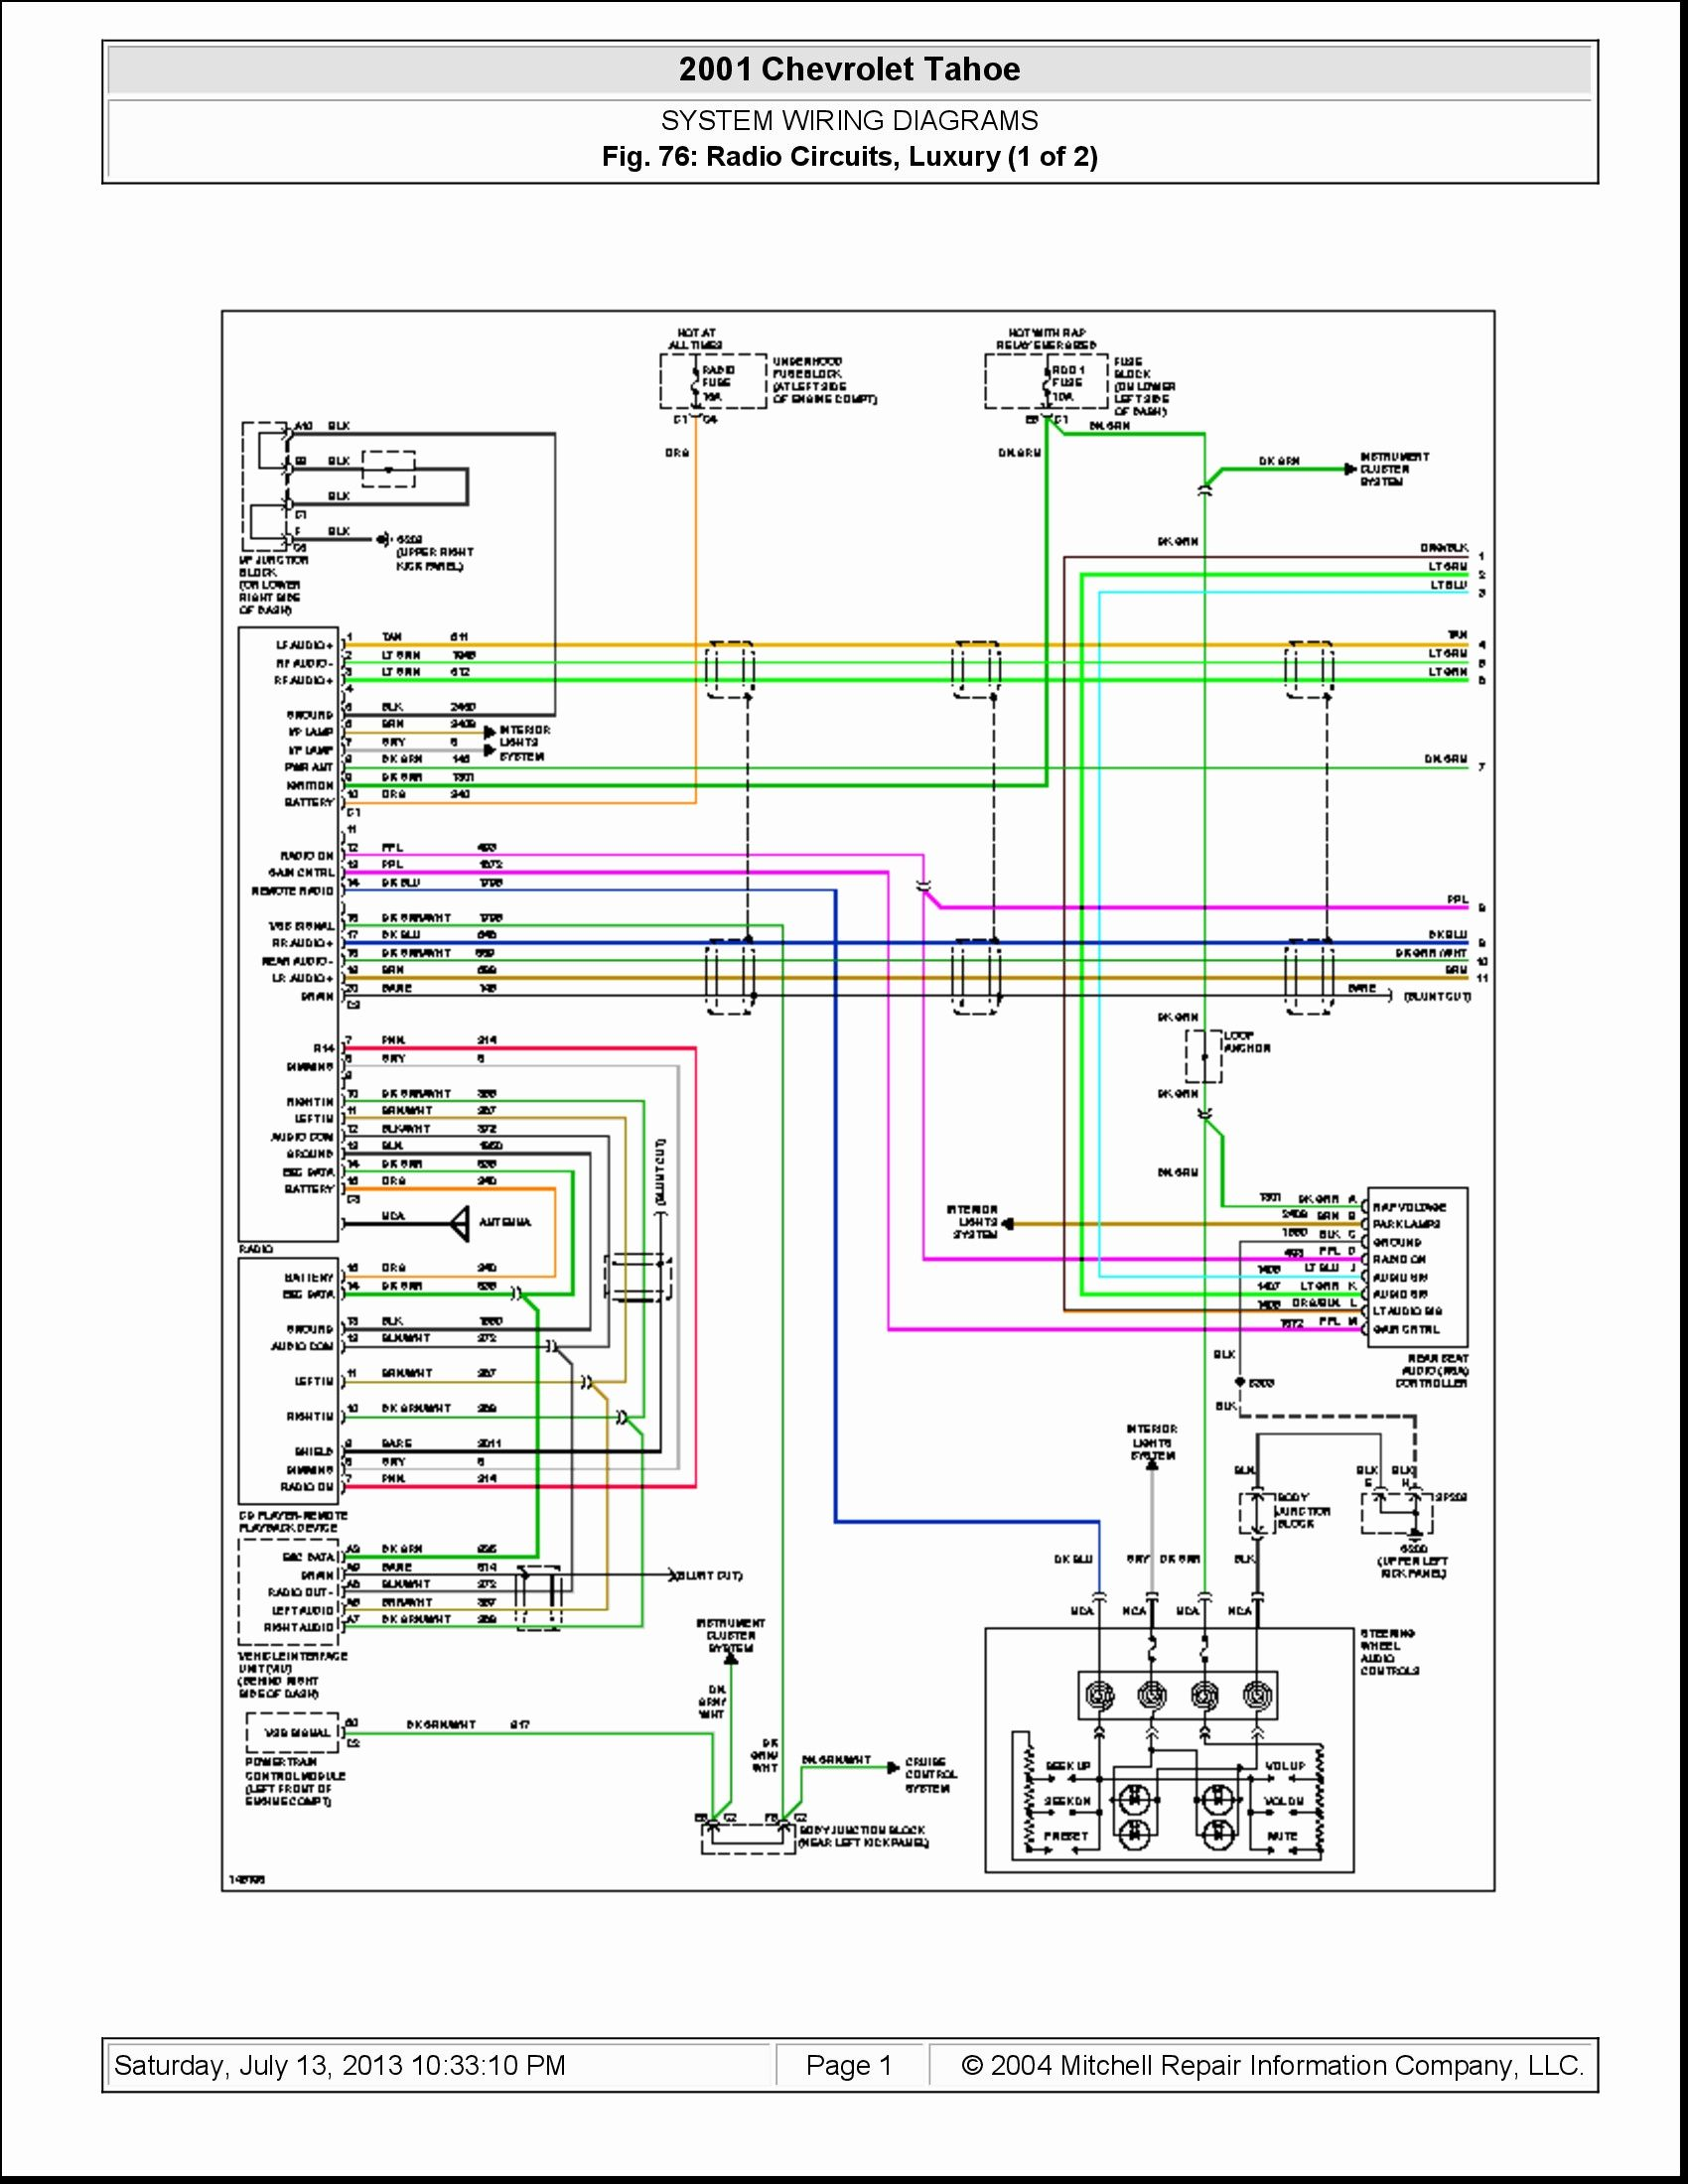 77 Luxury 2005 Chevy Silverado Tail Light Wiring Diagram | Chevy silverado,  2003 chevy silverado, 2004 chevy silveradoPinterest